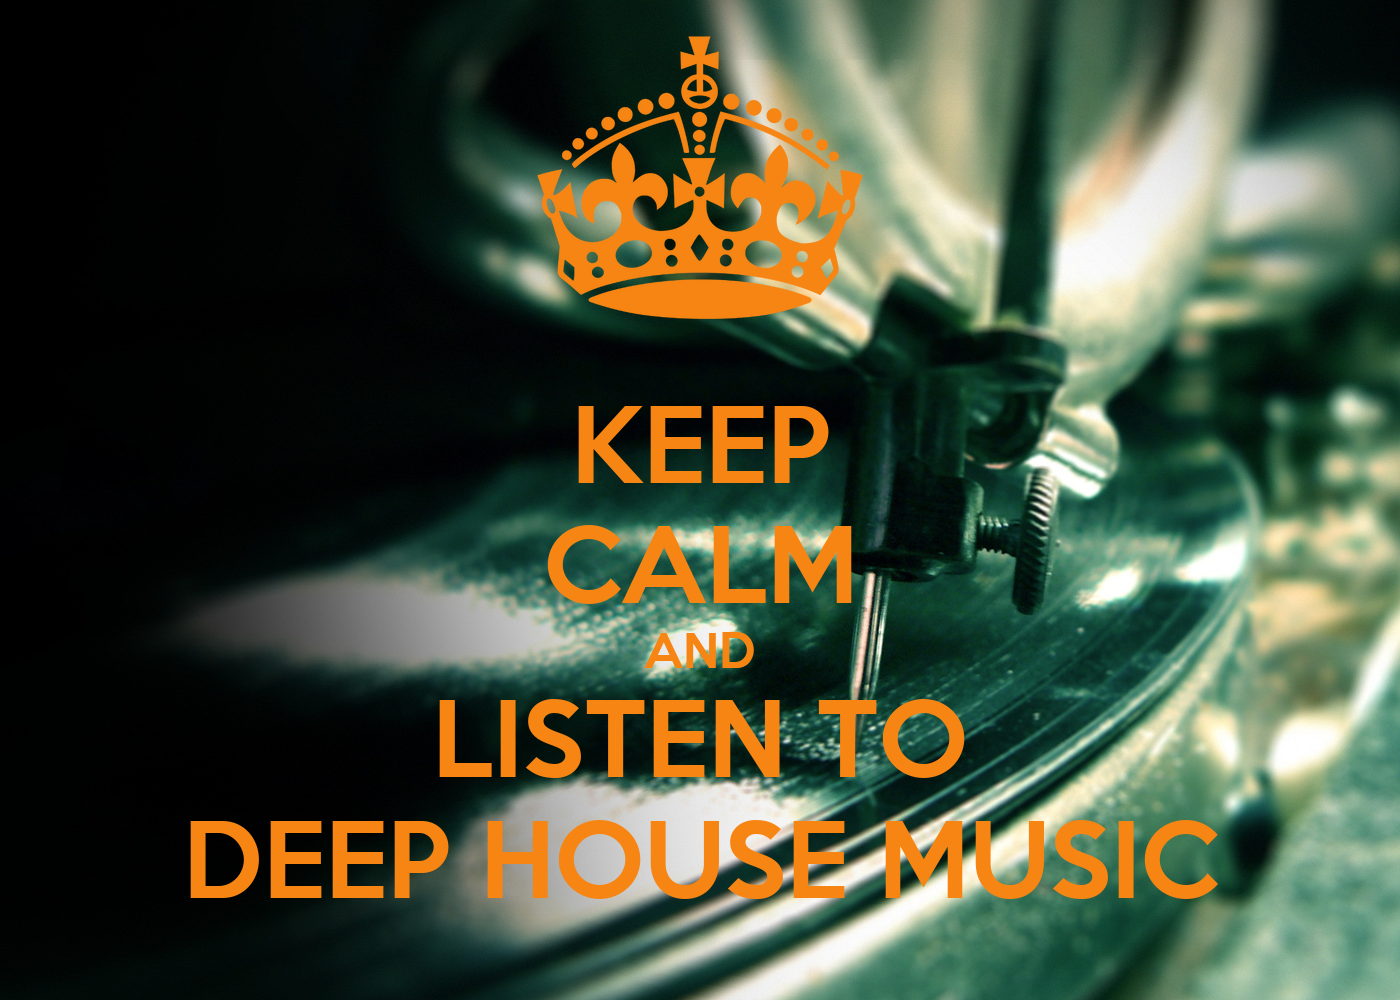 Keep calm and listen to deep house music poster cristian for Deep house music